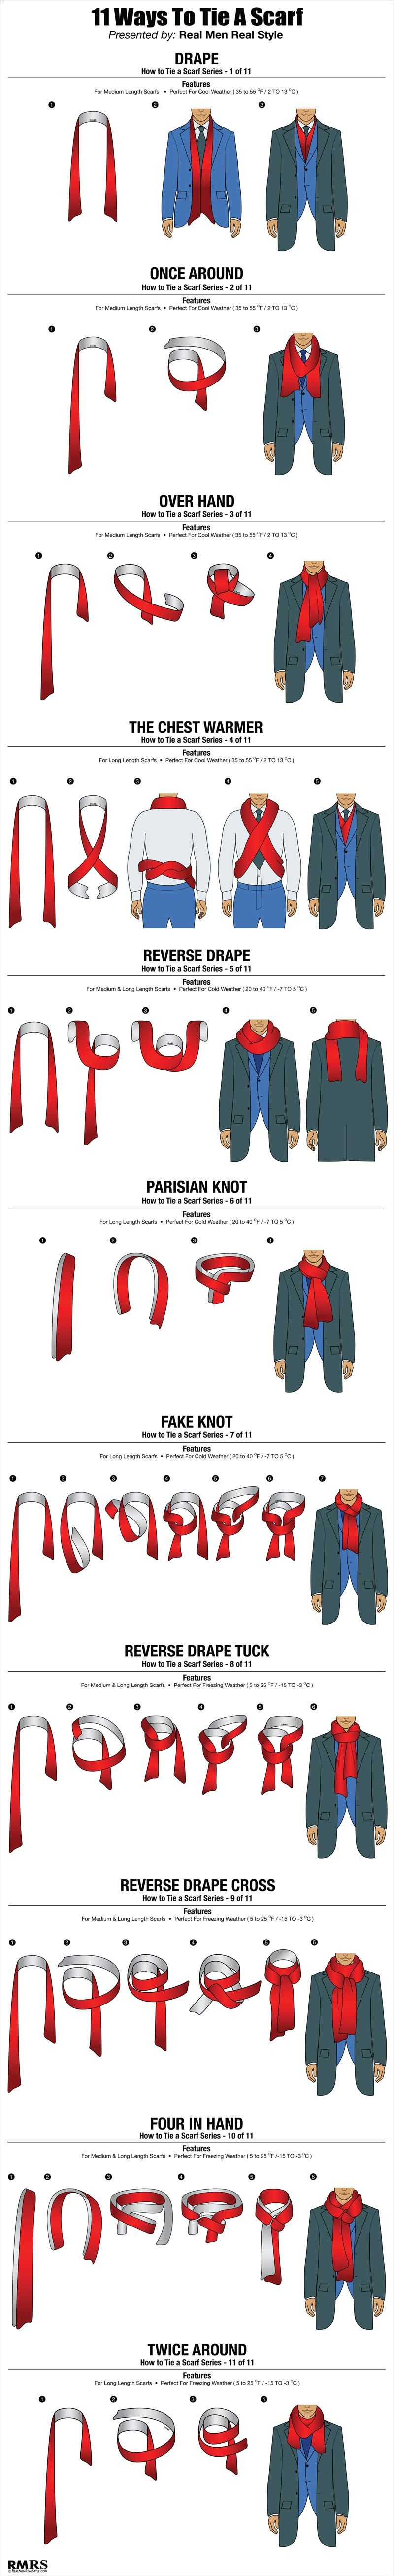 11 Ways To Tie Scarves For Men - A Man's Guide To Tying A Scarf